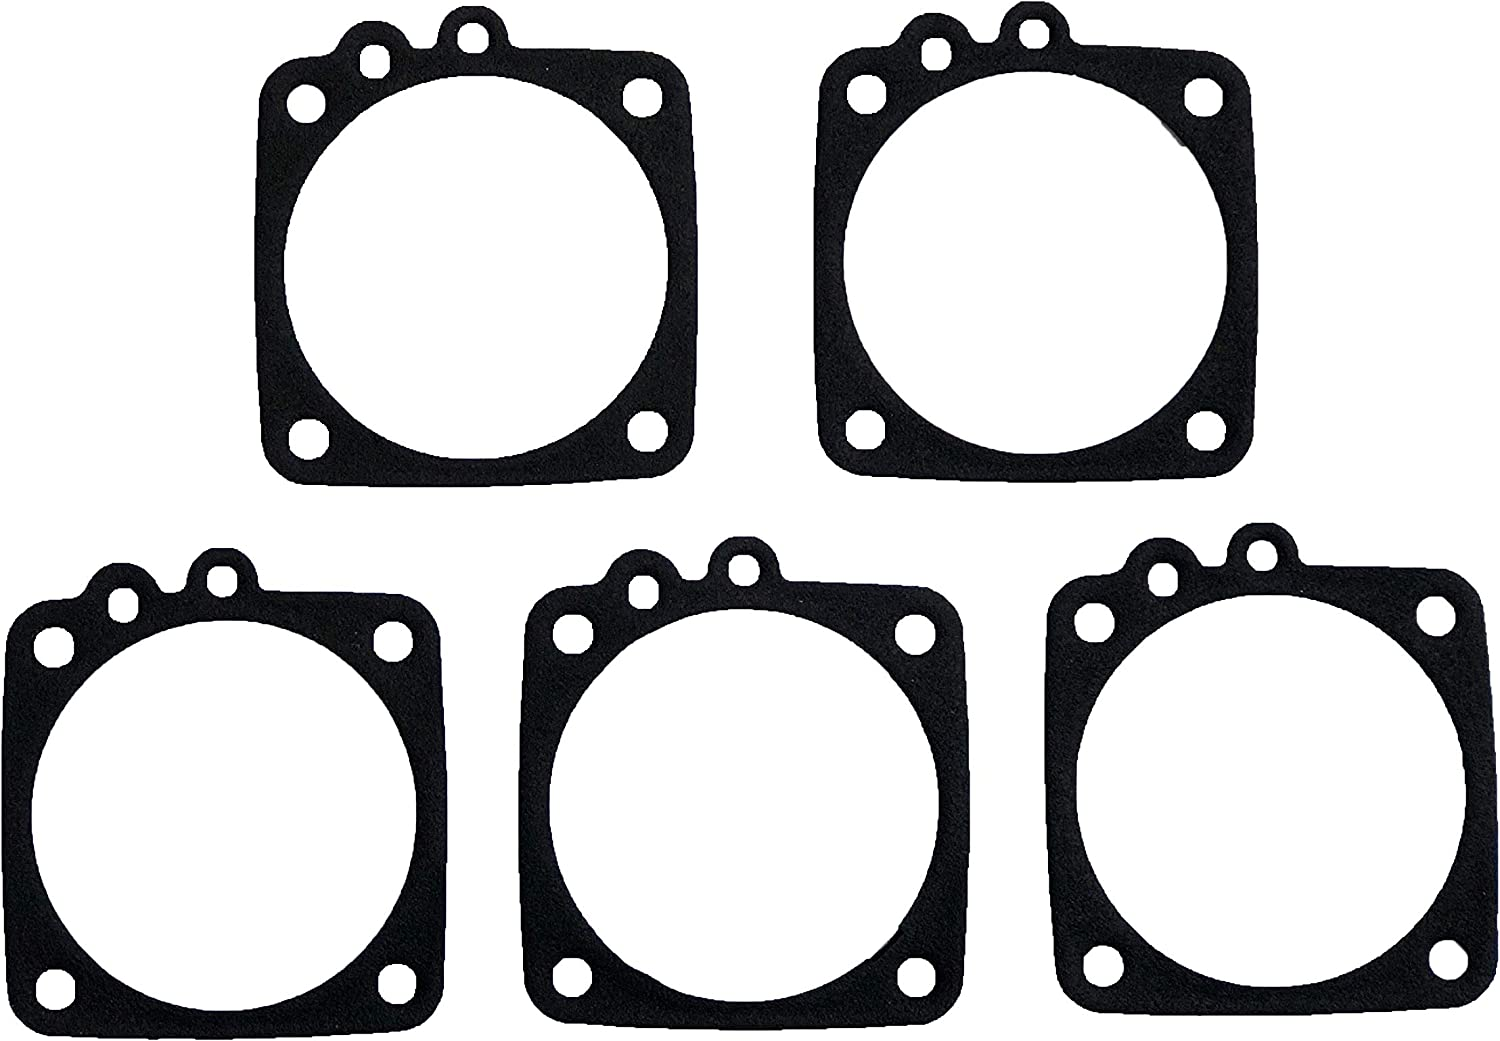 883-881 for NV45AB2 5 per Pack A AeroPro 45-28 Aftermarket Gaskets